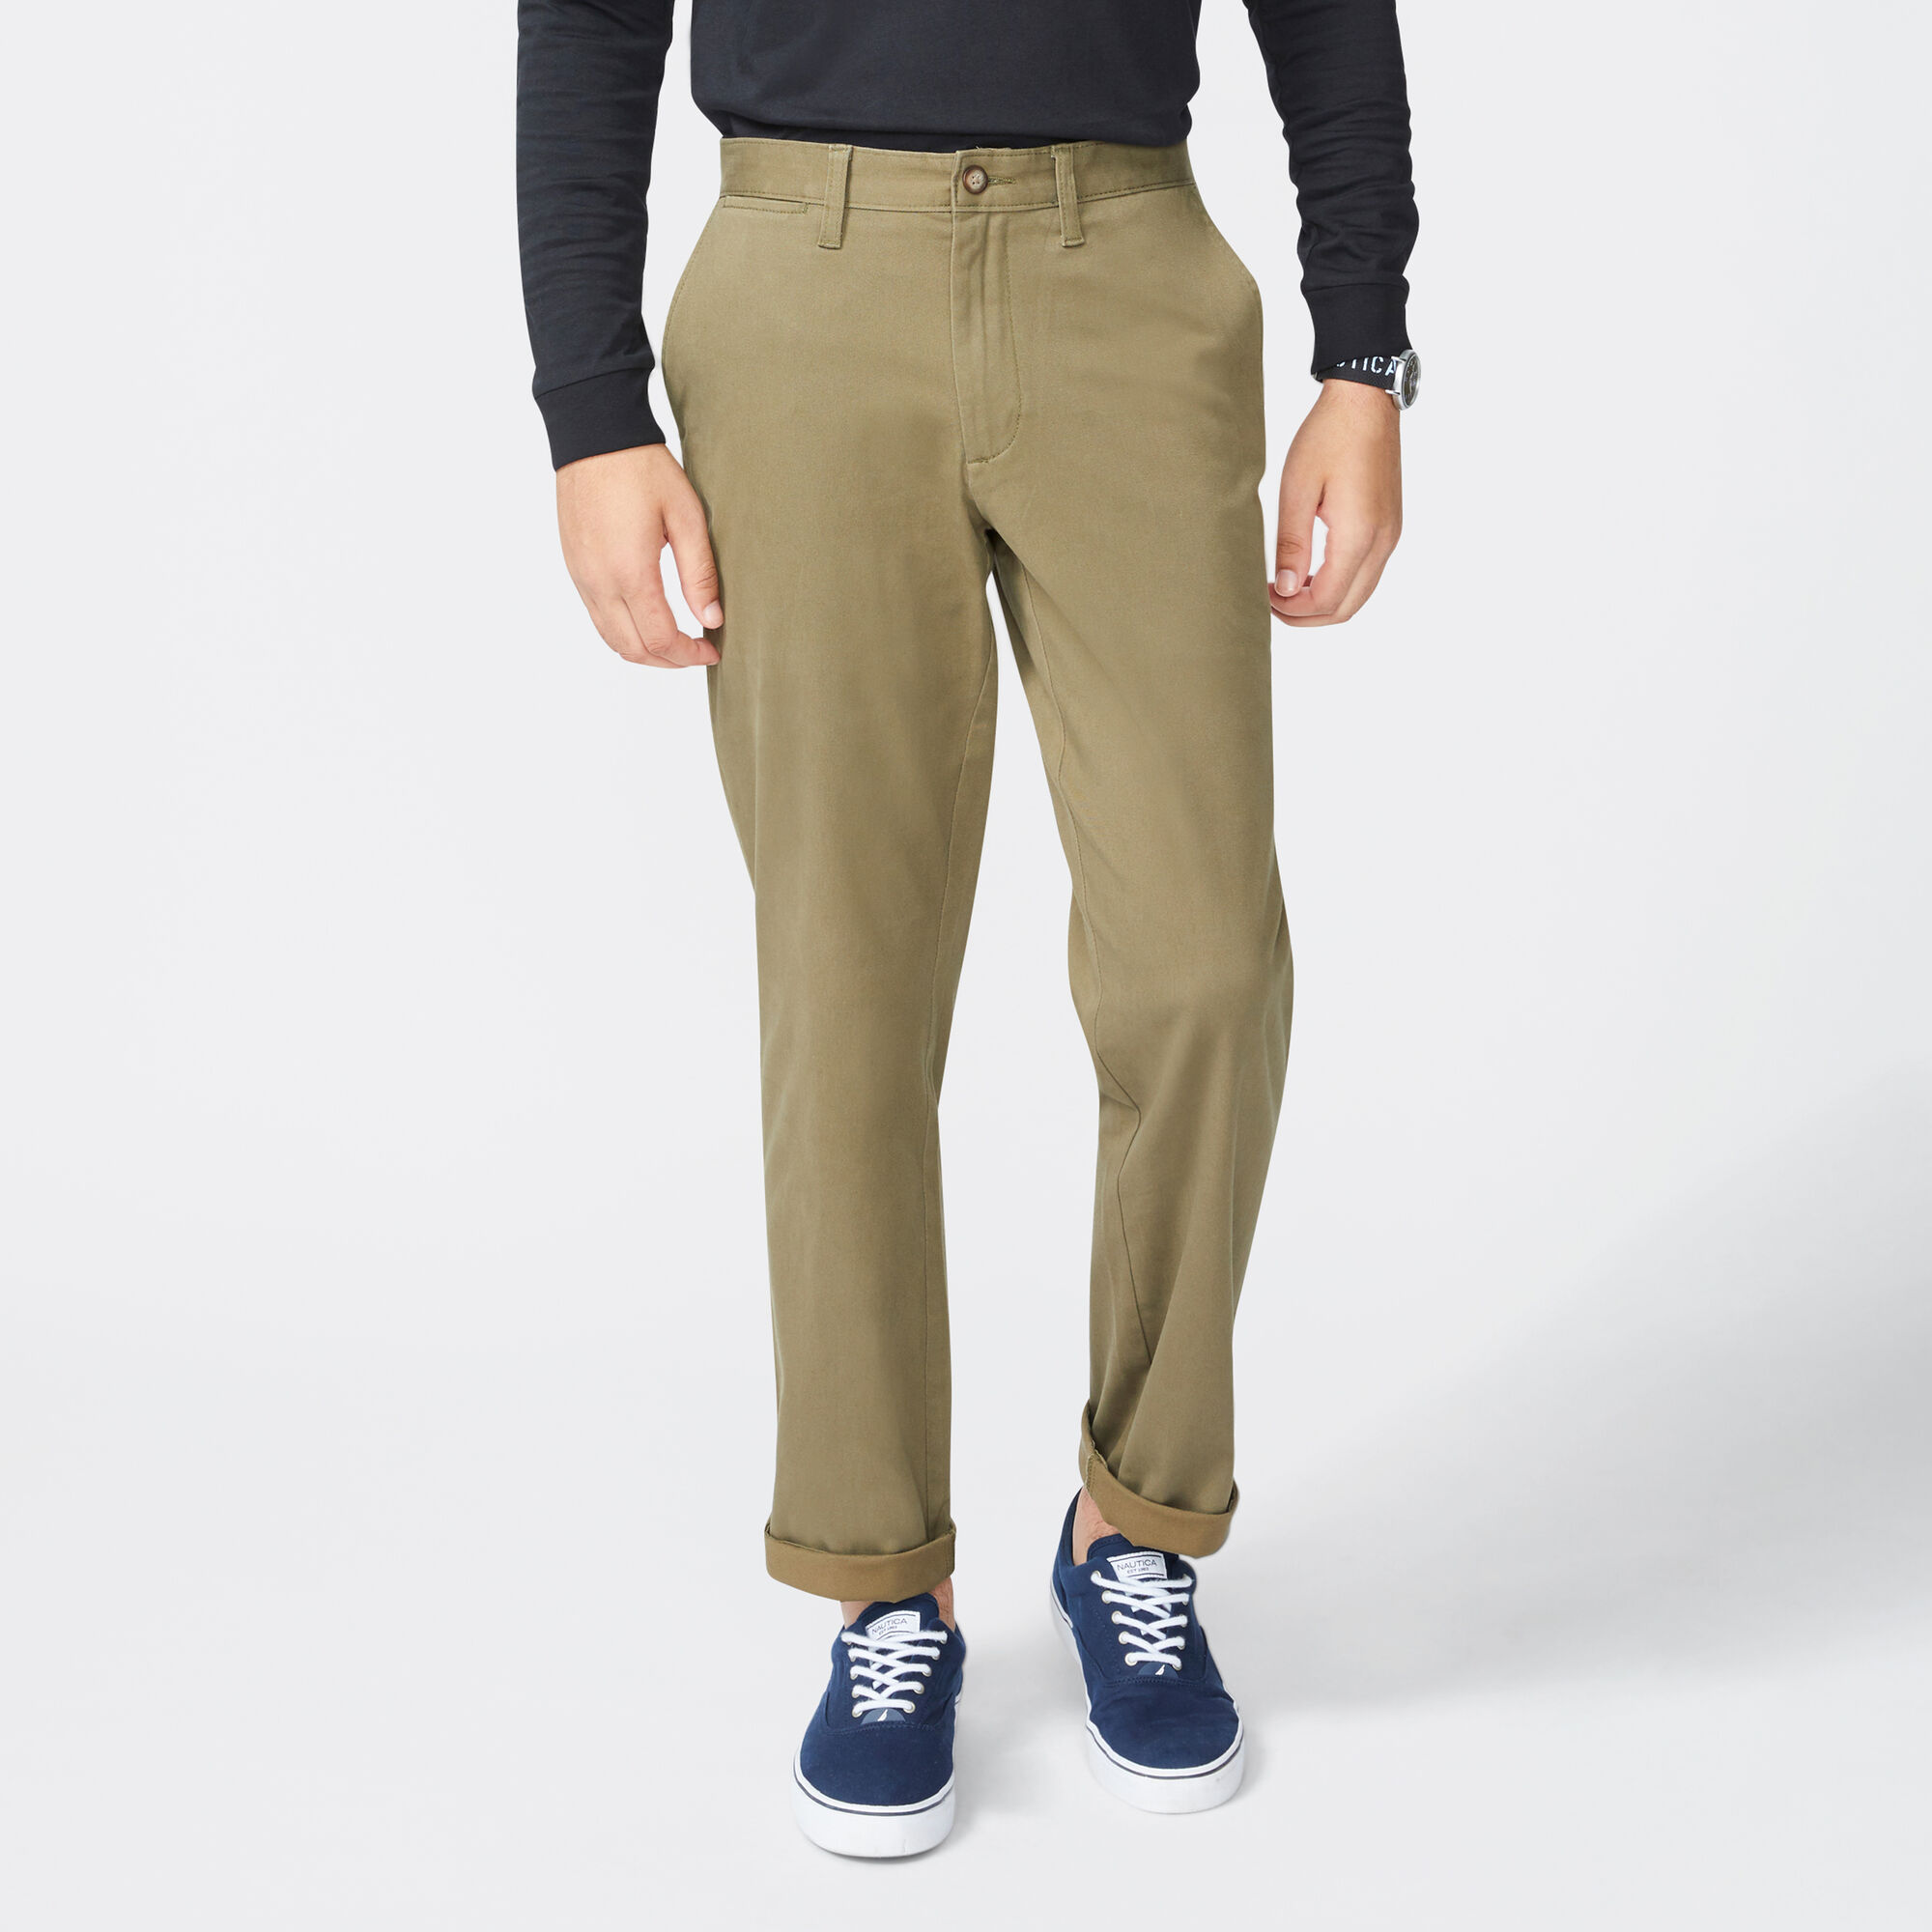 Details about  /Nautica Men/'s Twill Flat-Front Pant